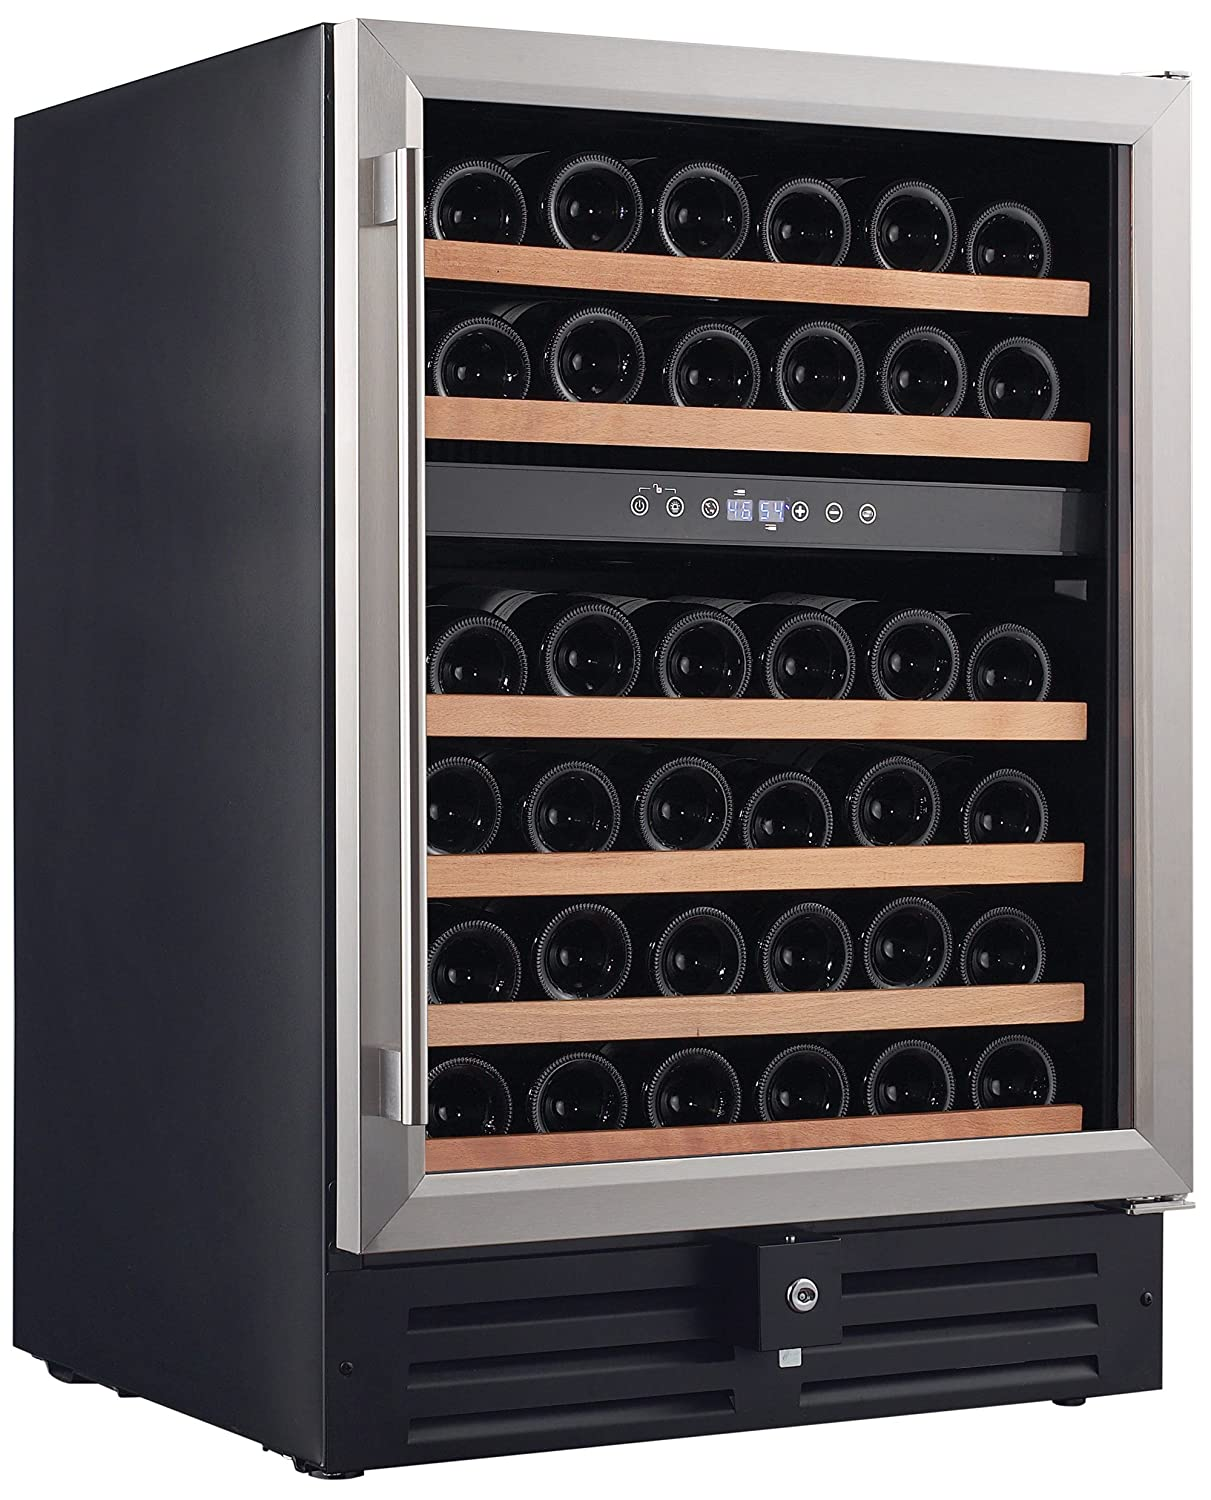 Smith & Hanks RW145DR 46 Bottle Dual Zone Under Counter Wine Refrigerator, 24 Inch Width, Built-In or Free Standing